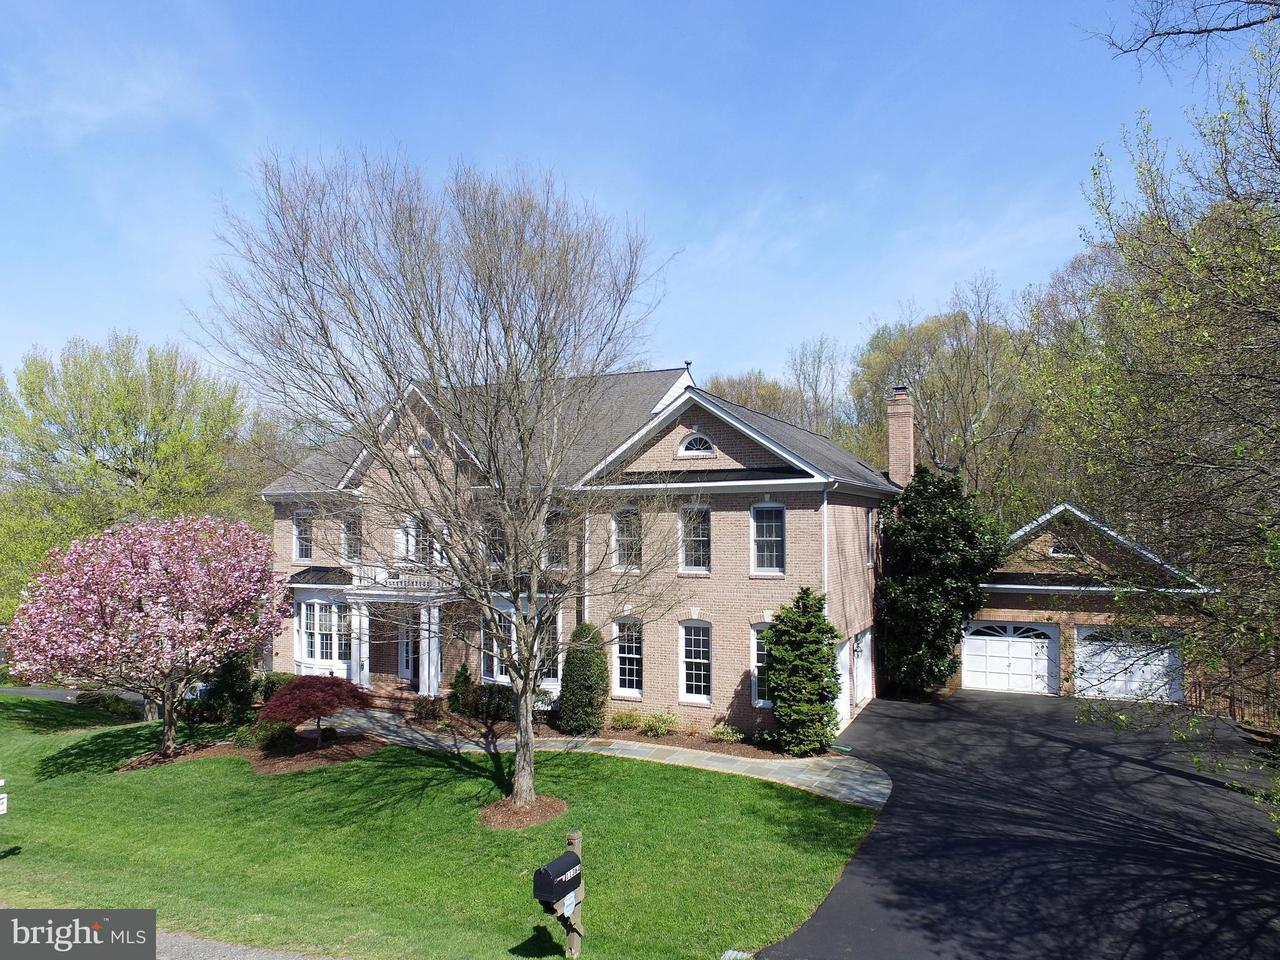 Single Family Home for Sale at 11364 JACKRABBIT Court 11364 JACKRABBIT Court Potomac Falls, Virginia 20165 United States